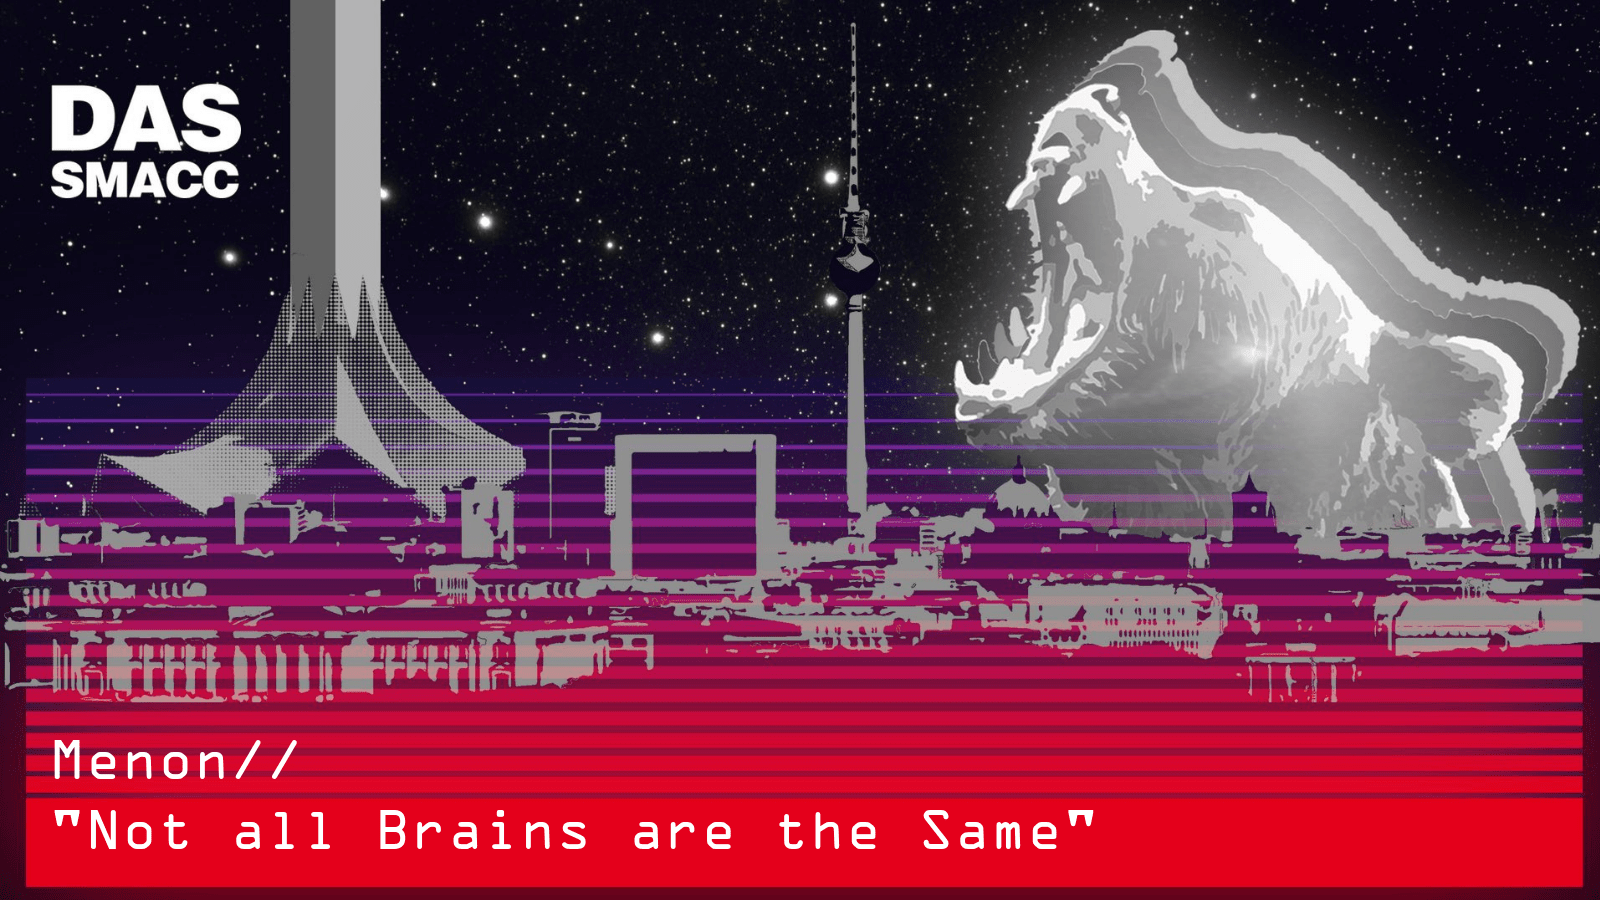 Not all brains are the same